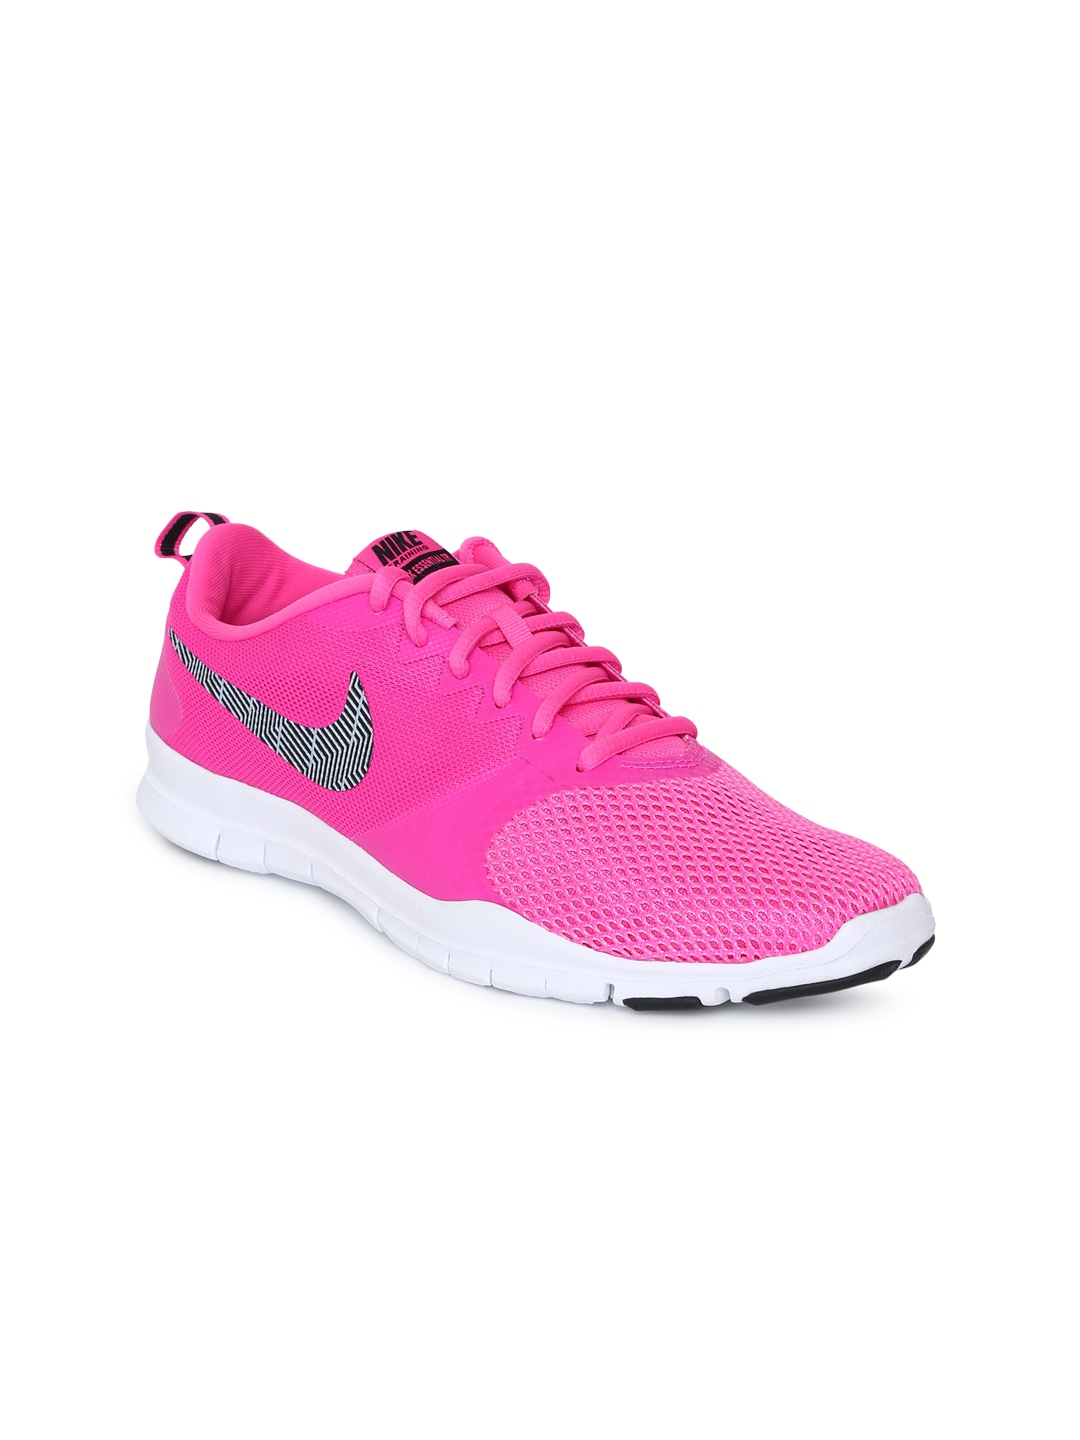 50e6afa83574a Nike Training Shoes Women - Buy Nike Training Shoes Women online in India